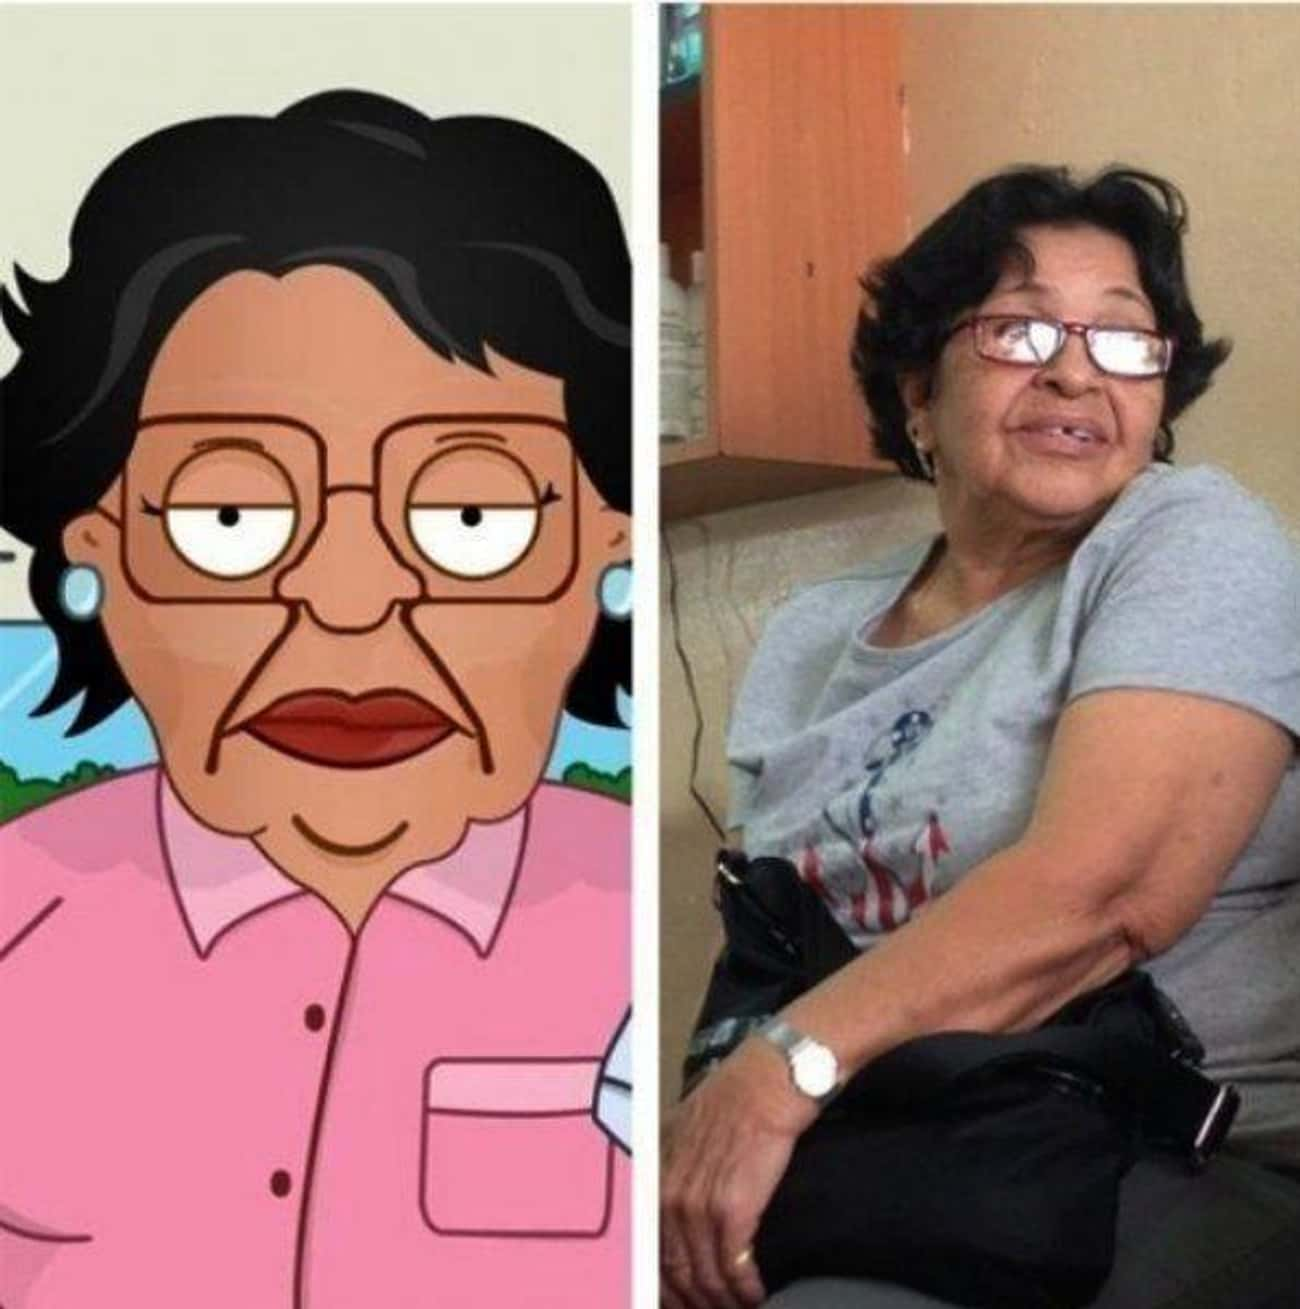 Consuela is listed (or ranked) 1 on the list 24 Real People Who Look Exactly Like Family Guy Characters